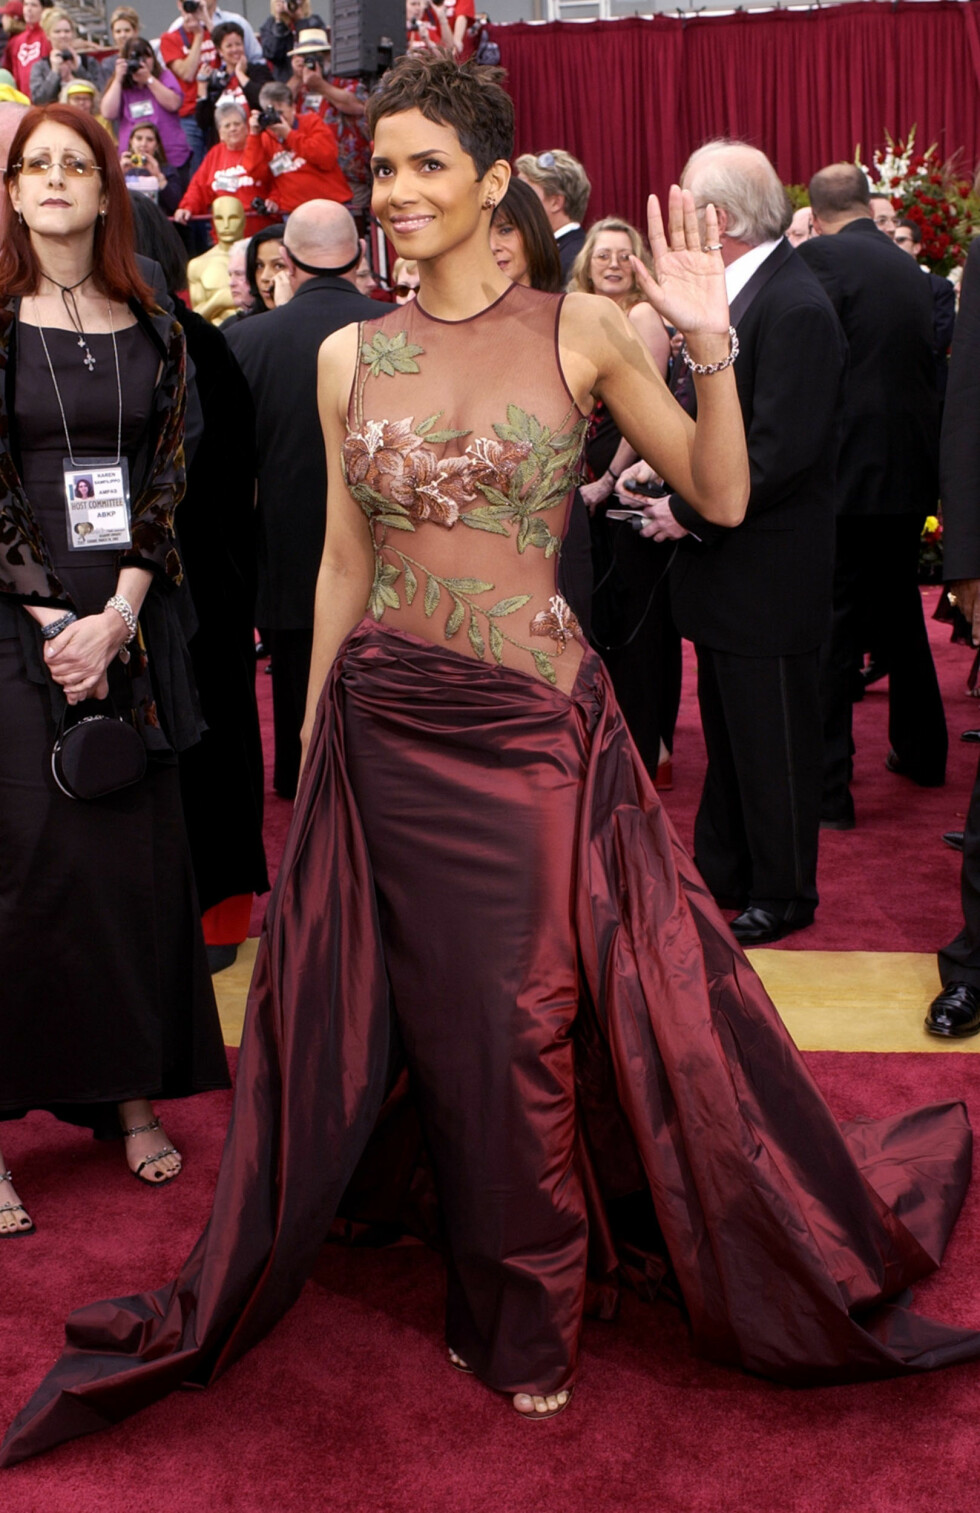 Actress Halle Berry waves as she arrives for the 74th annual Academy Awards on Sunday, March 24, 2002, in Los Angeles. Berry is nominated for best actress for her role in ÒMonster's Ball.Ó (AP Photo/Laura Rauch) Foto: AP